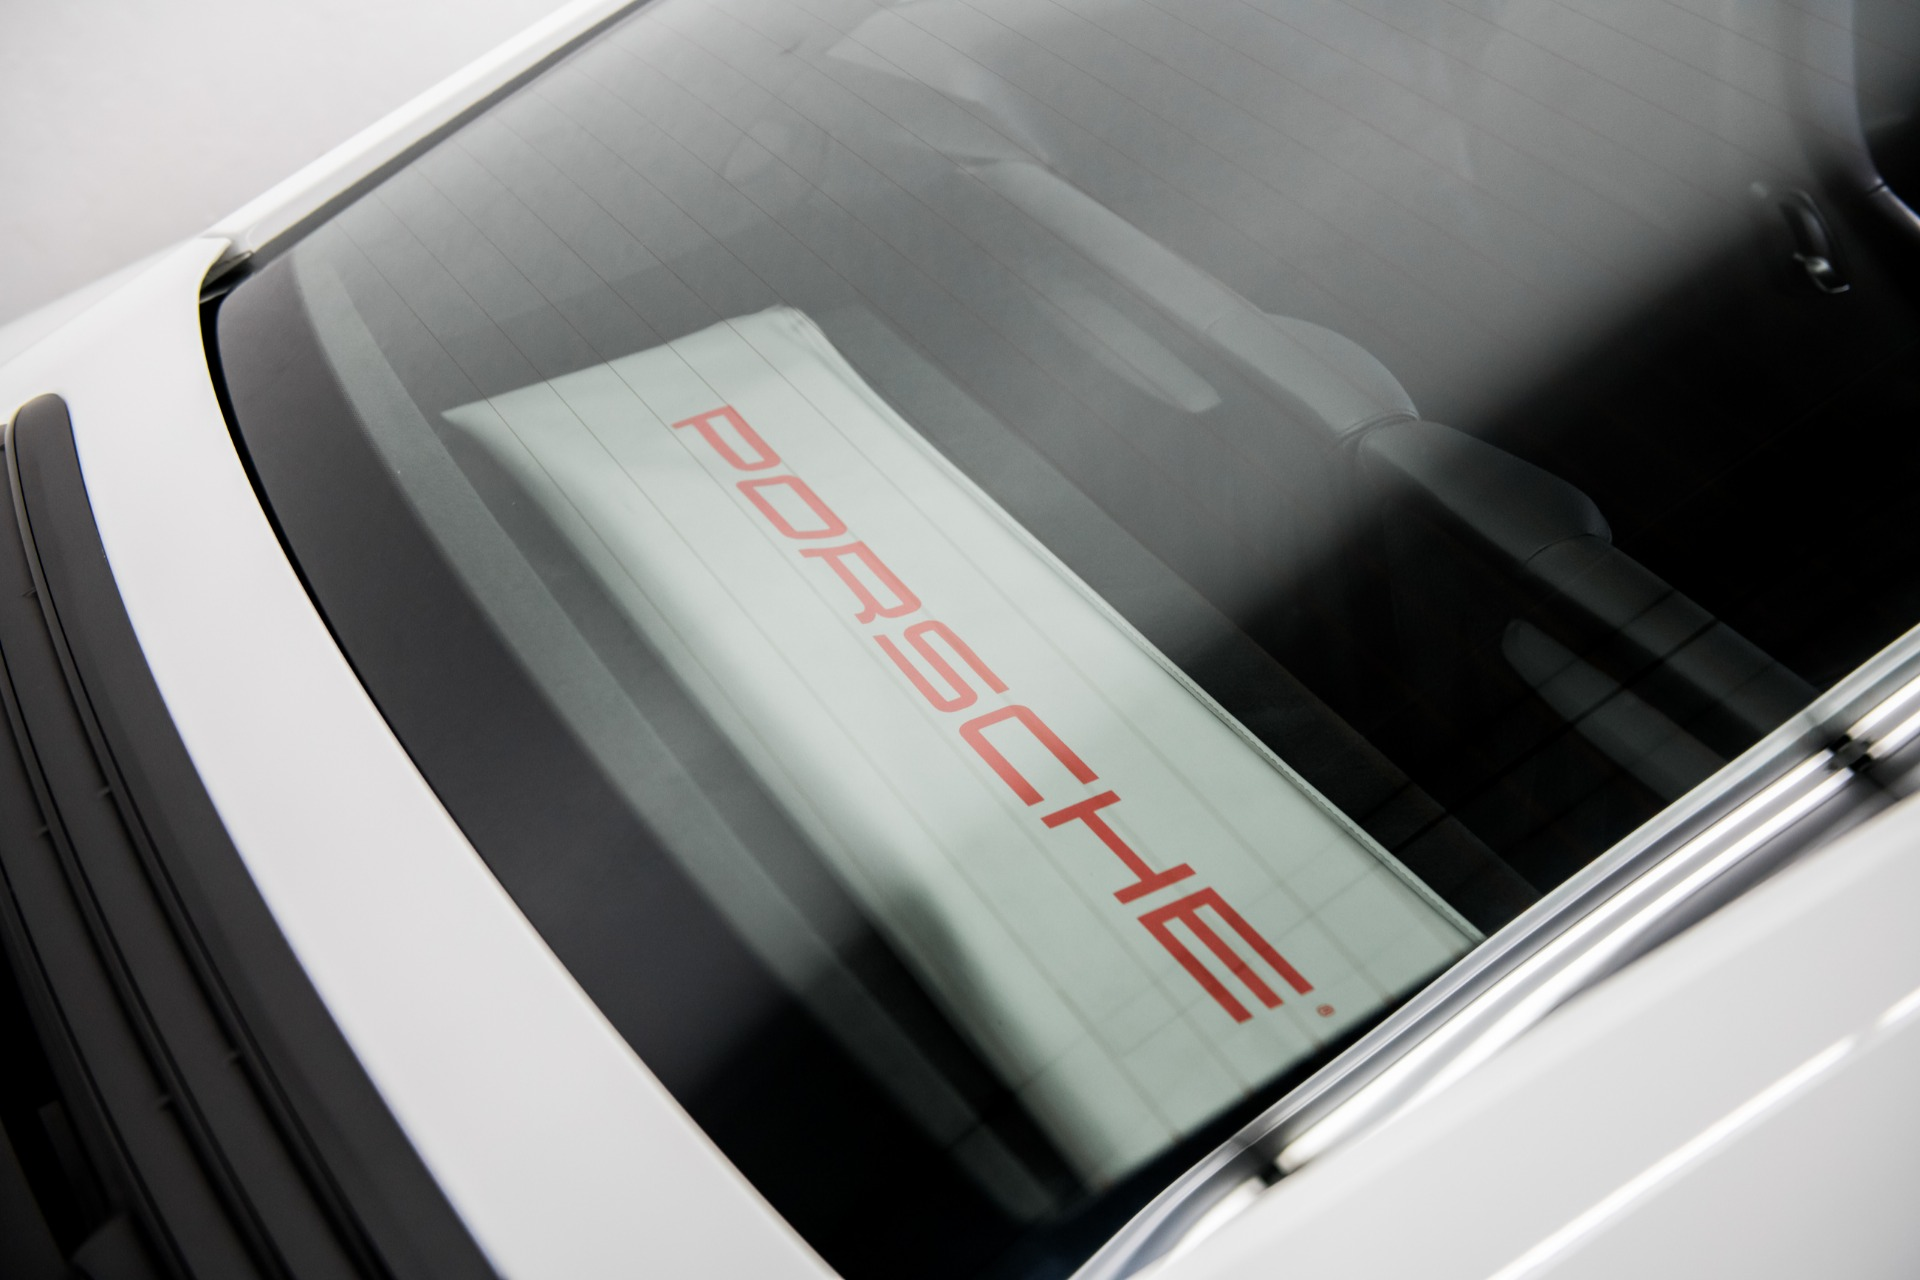 Used 2013 Porsche 911 Carrera S Used 2013 Porsche 911 Carrera S for sale Sold at Response Motors in Mountain View CA 21